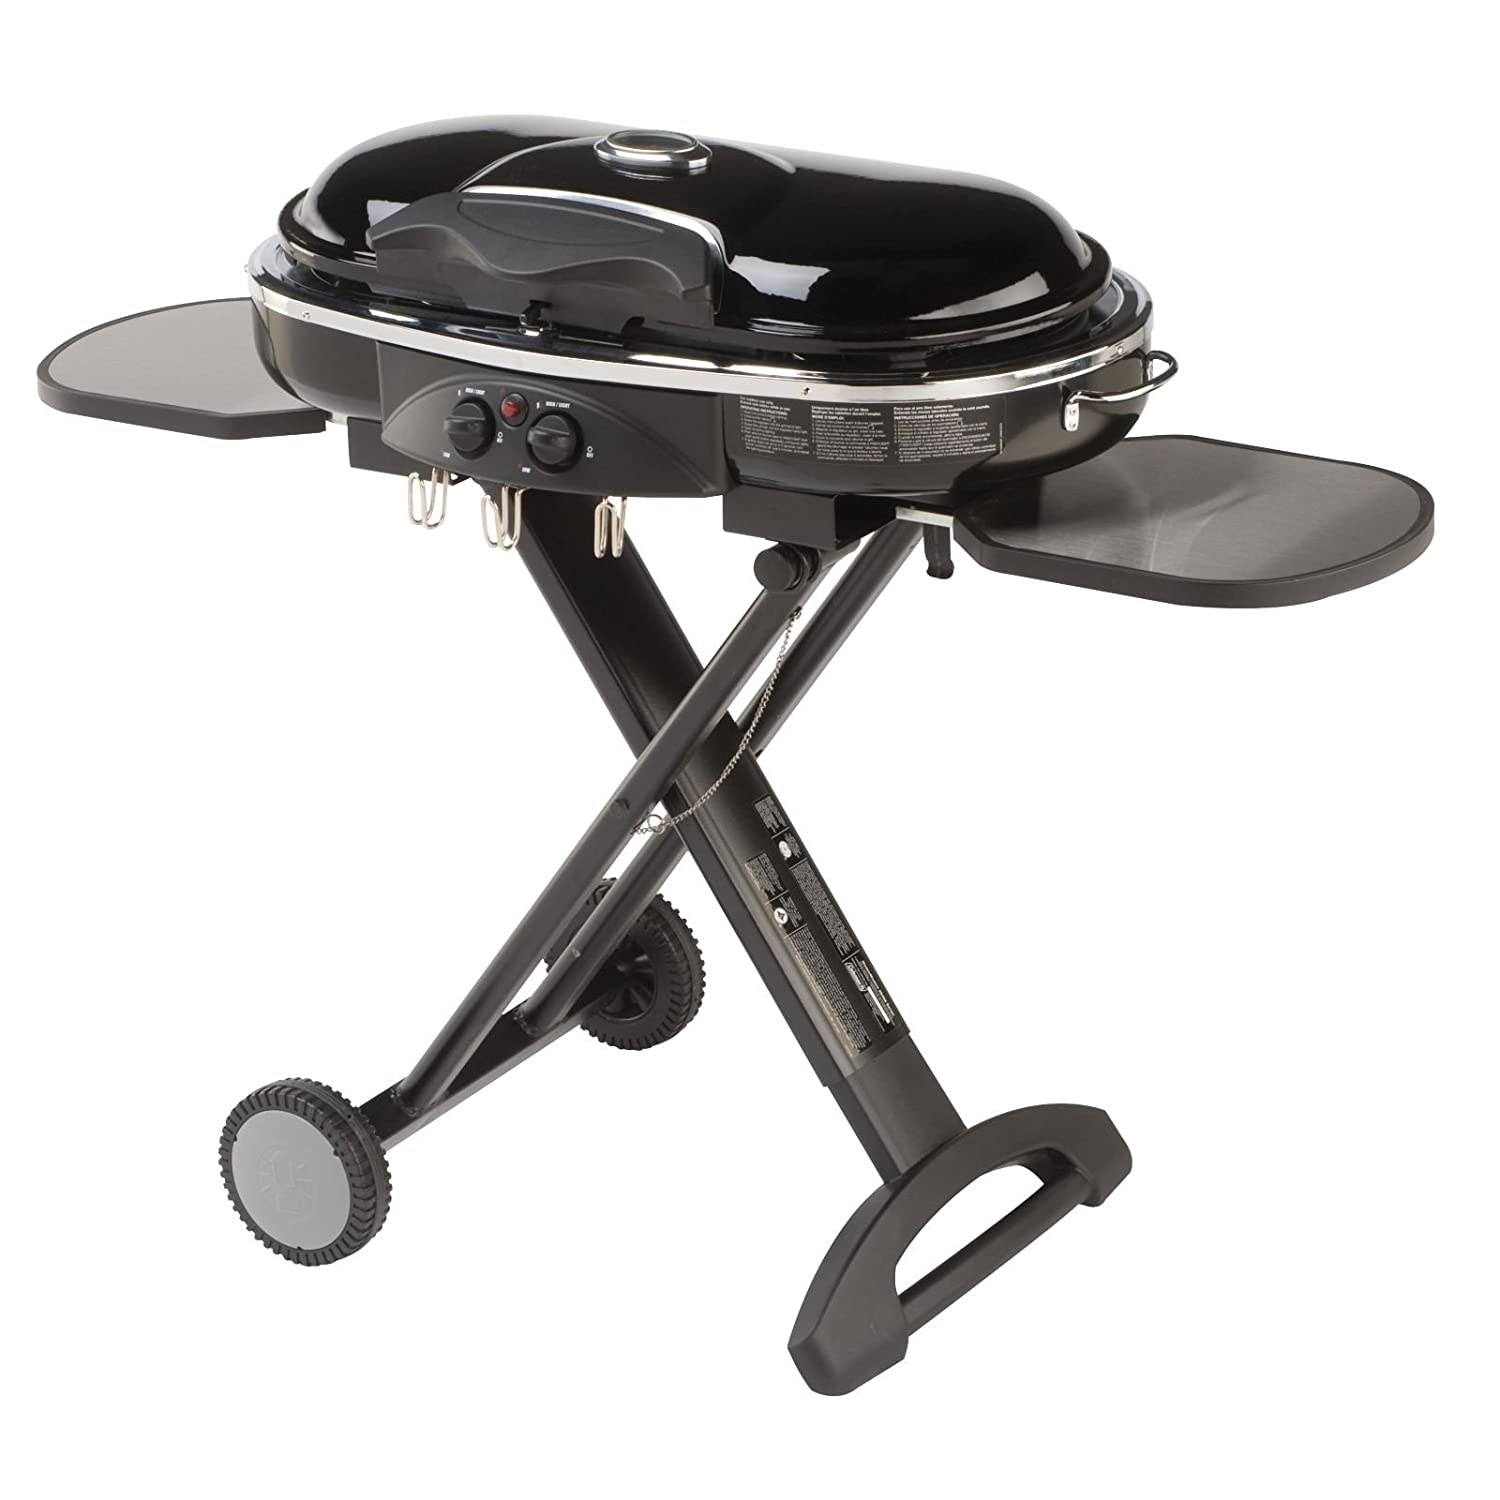 amazon com coleman roadtrip lxe portable propane grill black